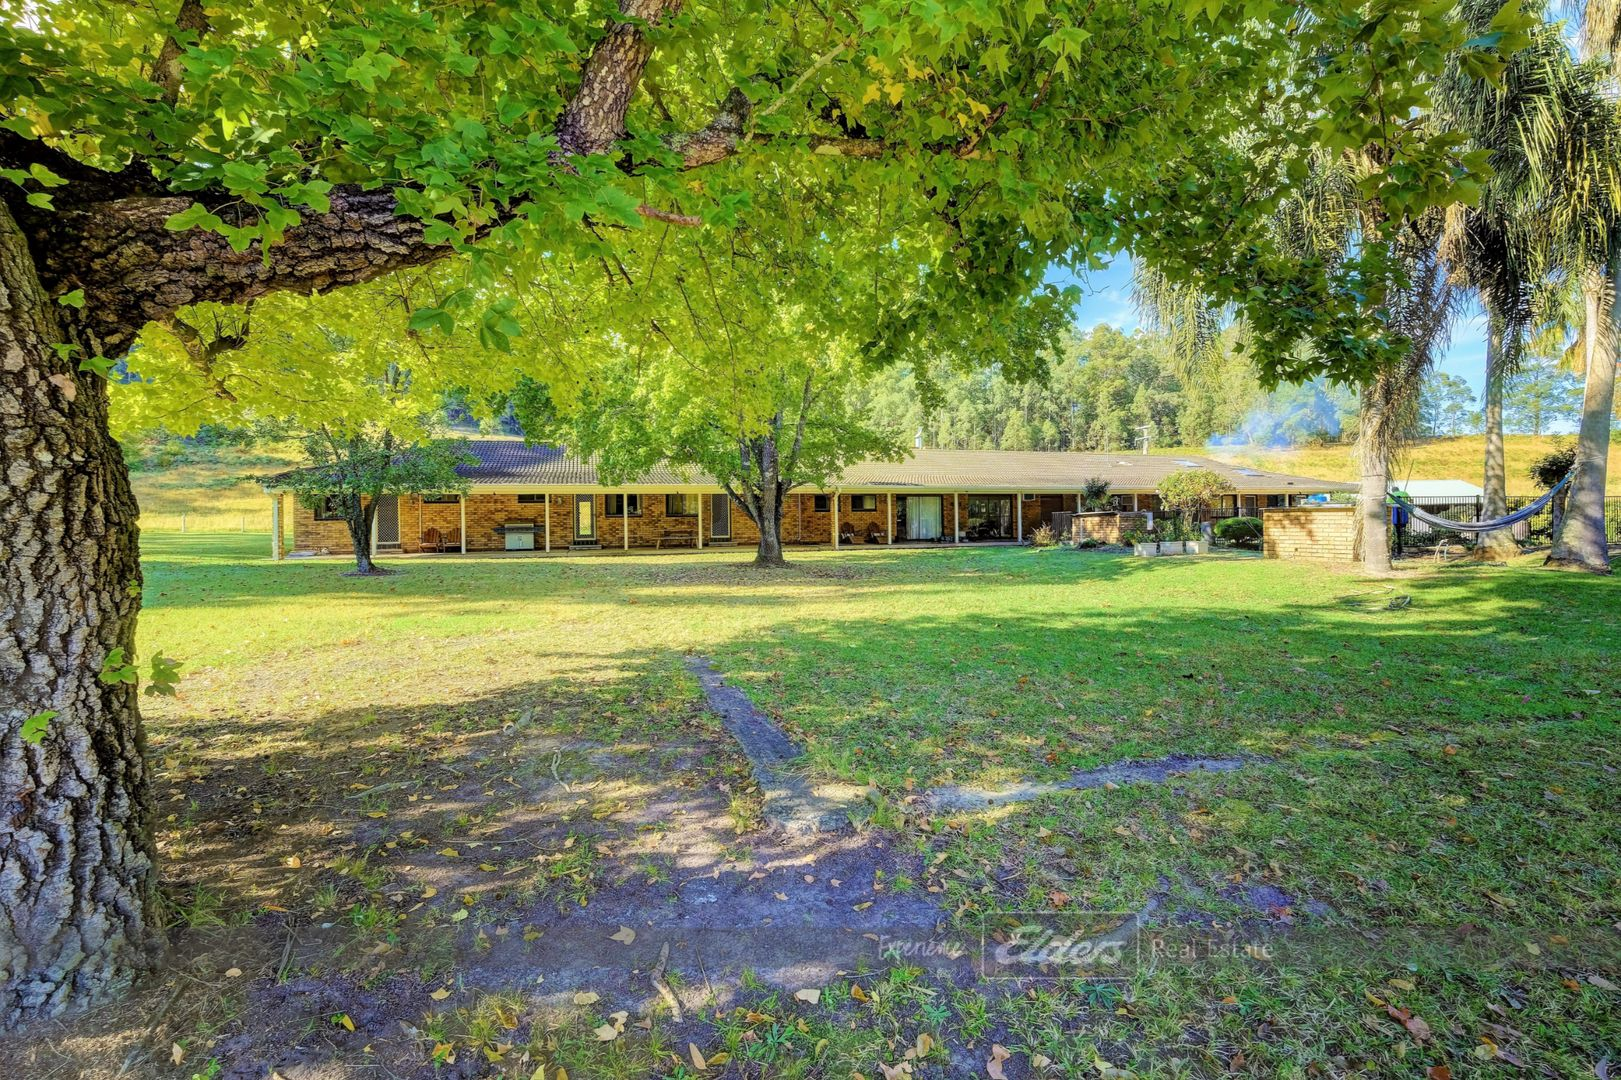 610 Wootton Way 'Forest Lodge', Wootton NSW 2423, Image 0